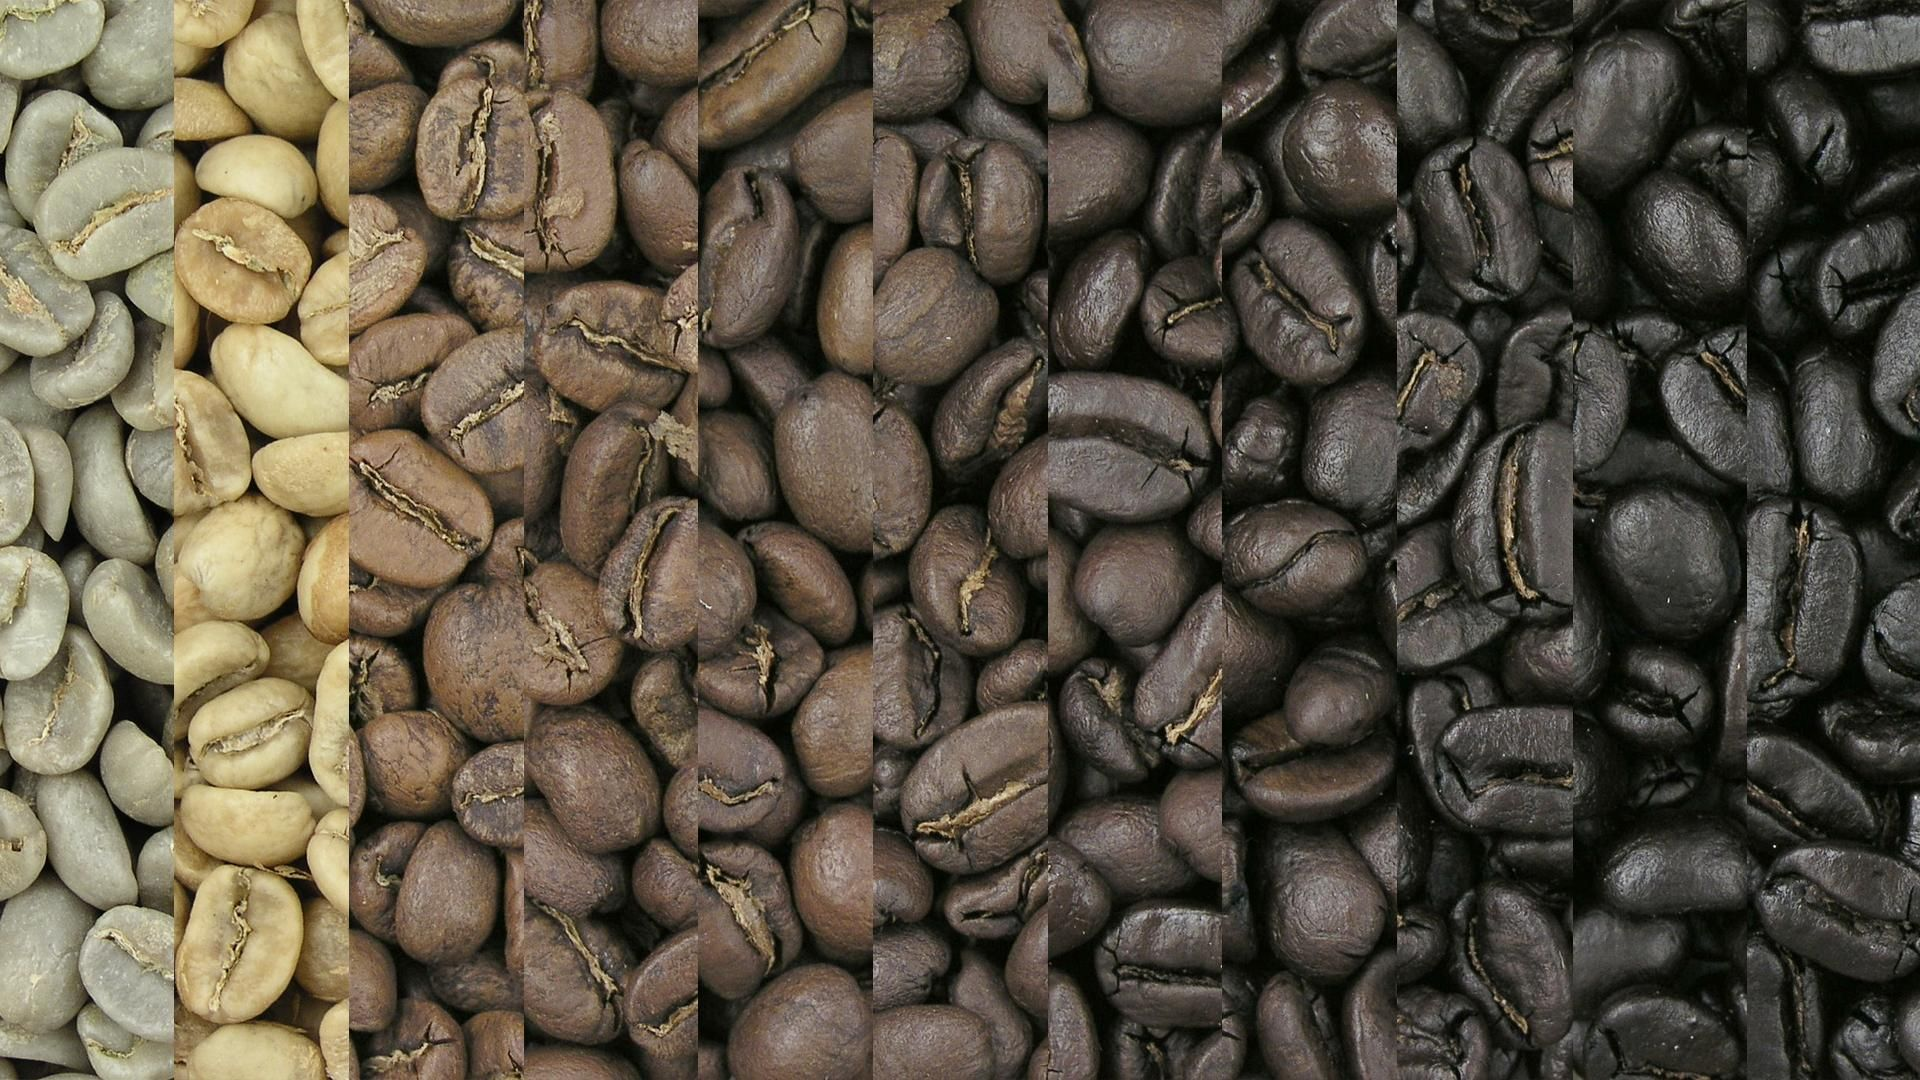 what to do with roasted coffee beans